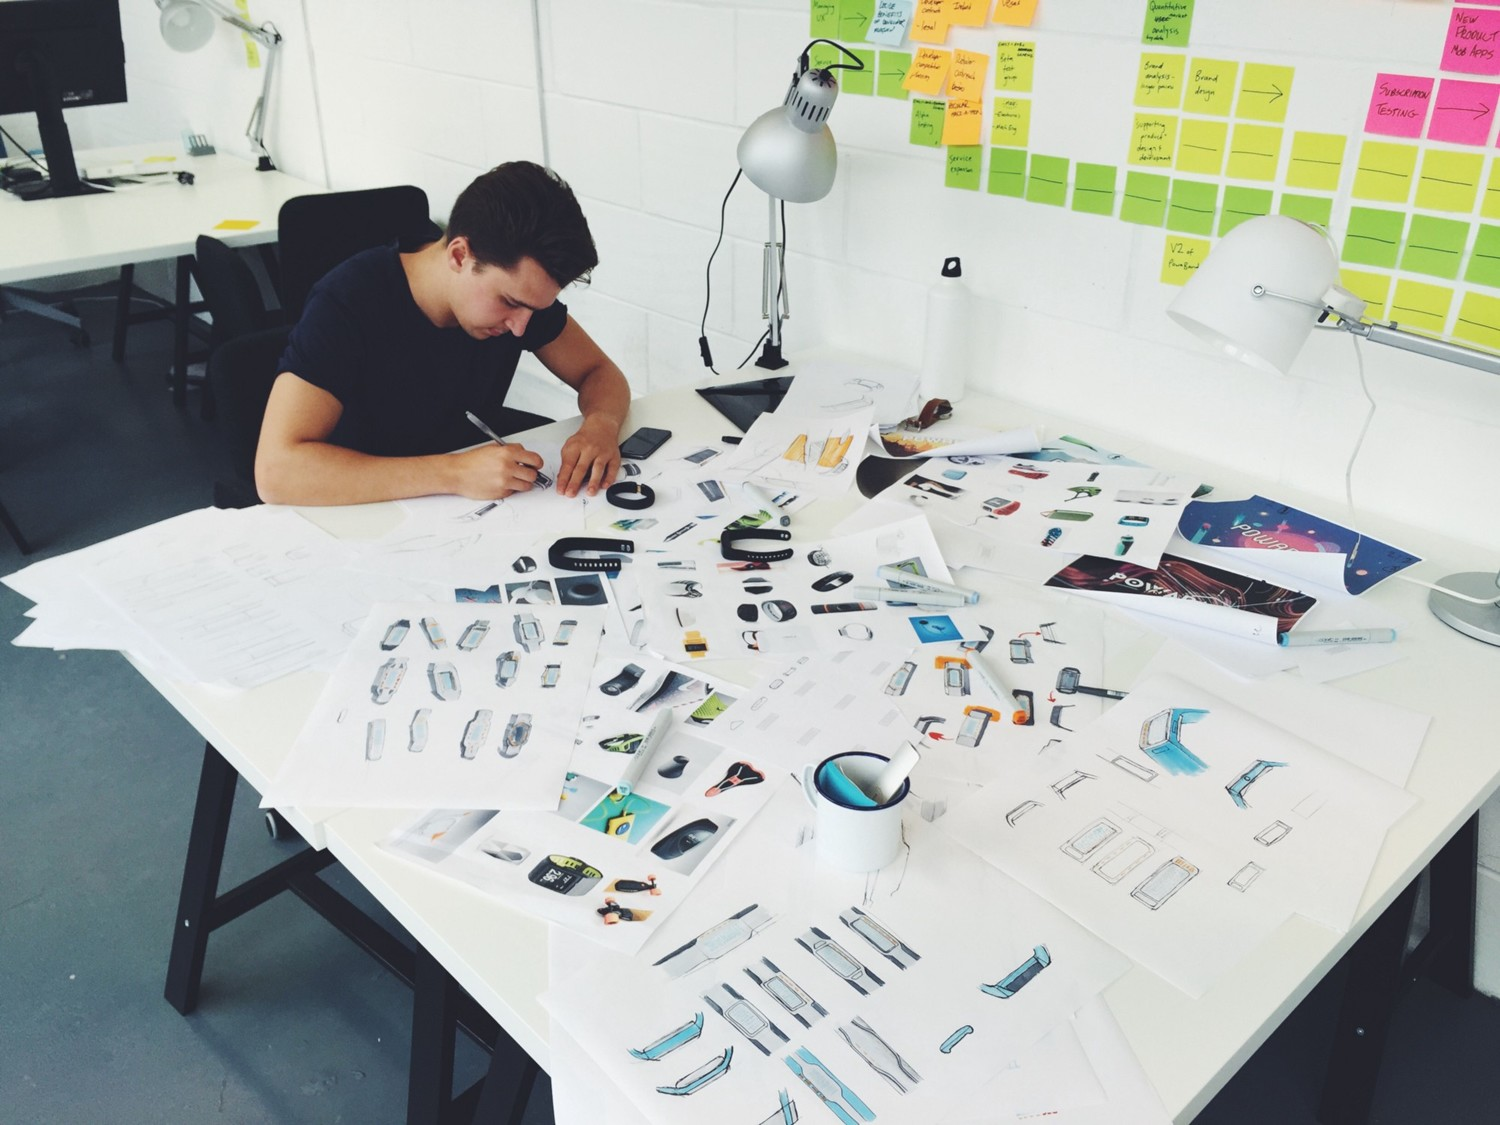 This is Nick doing some awesome designs for a wearable tech product